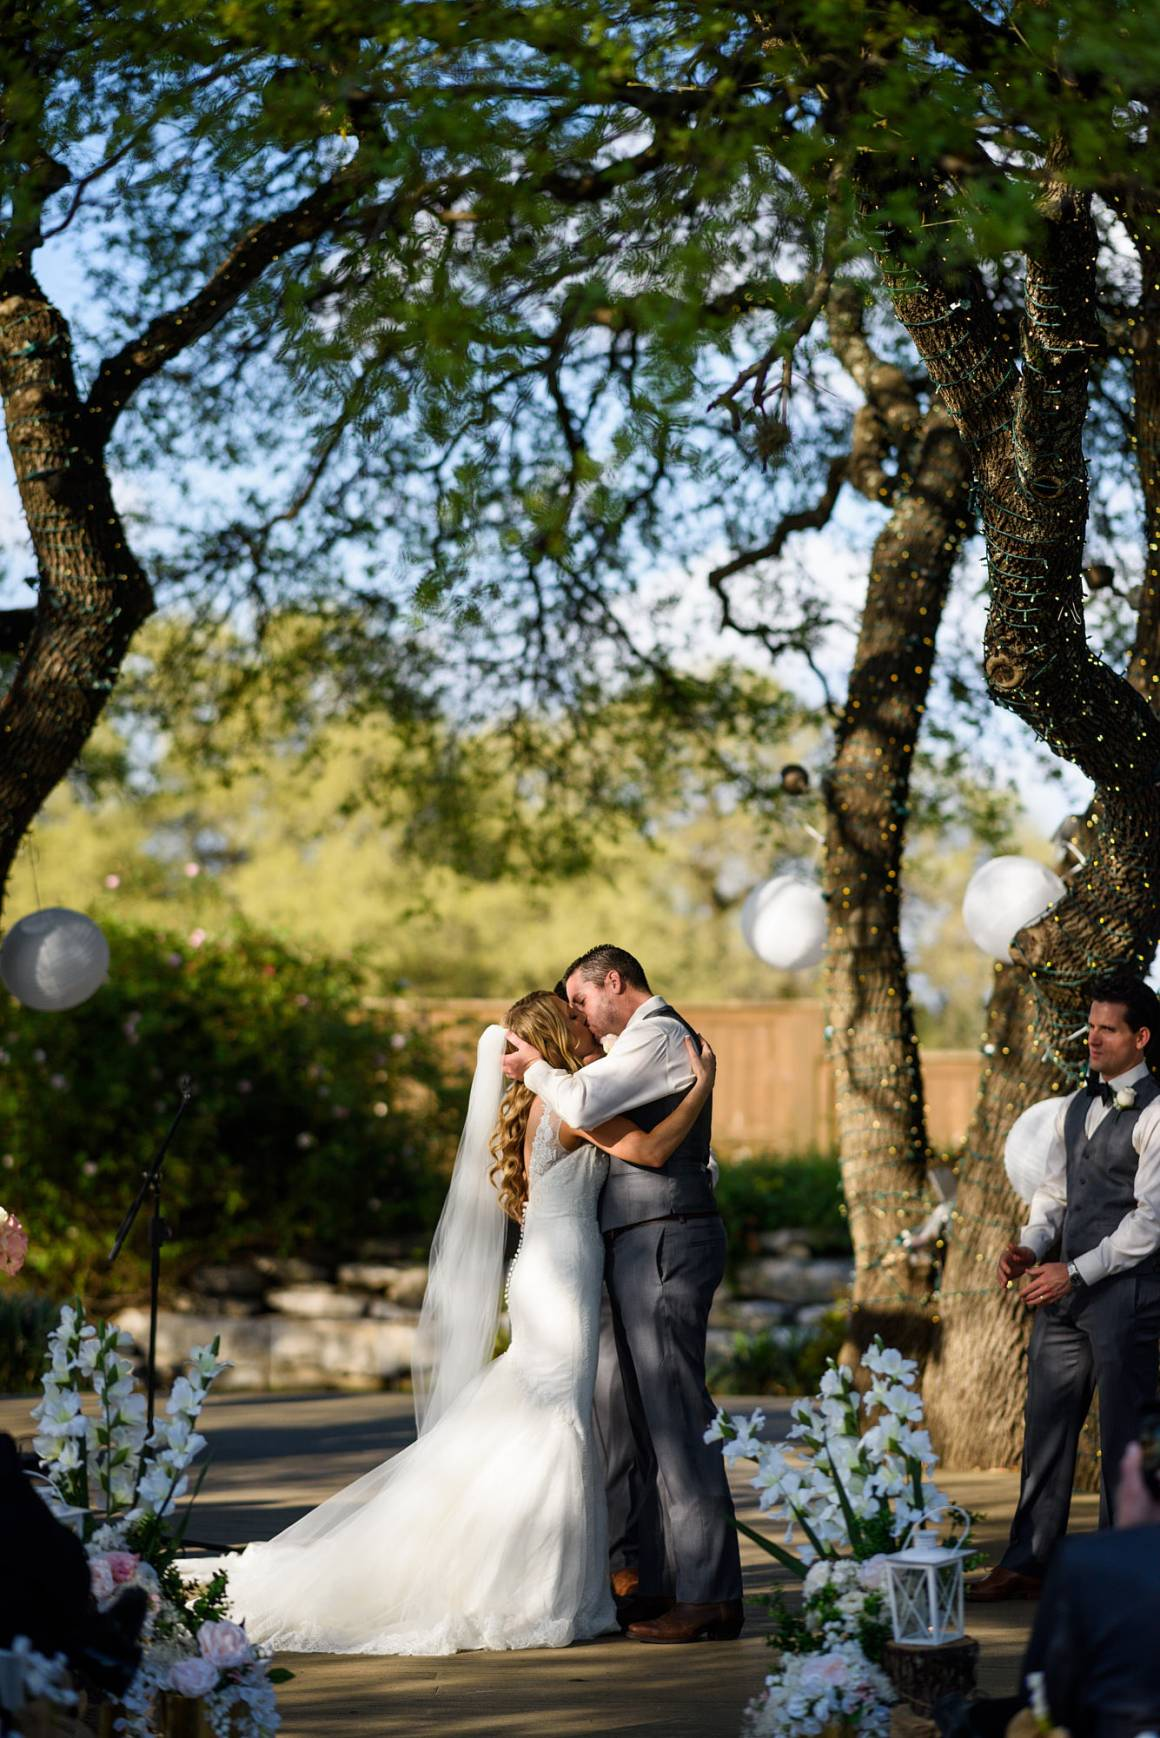 Antebellum Oaks Wedding - Austin Wedding Photographer - Jacob and Katie - hill country wedding, you may kiss the bride -